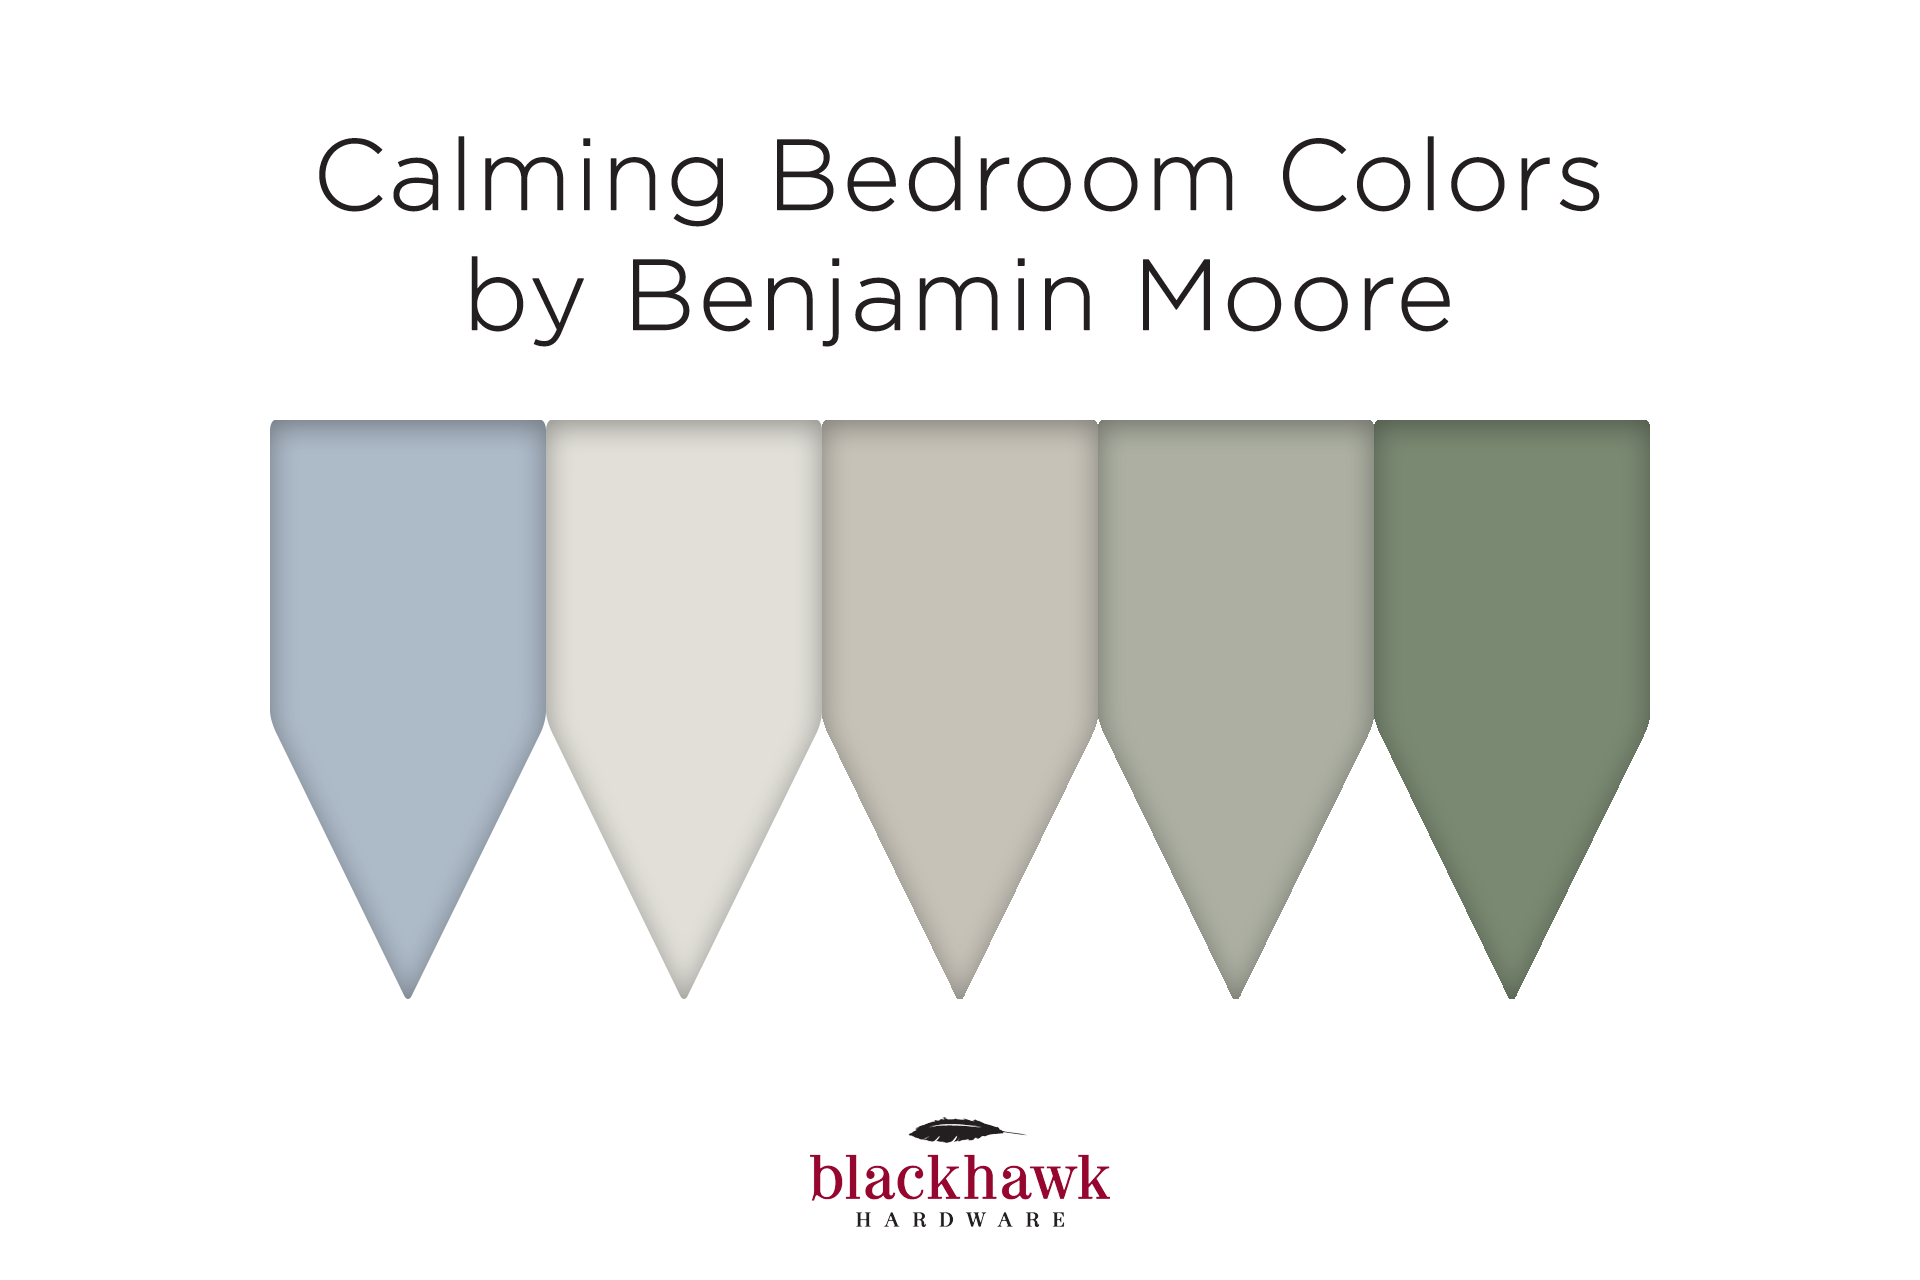 View Larger Image Calming bedroom paint colors by Benjamin Moore    Available at Blackhawk Hardware. Calming Paint Colors for Bedrooms   Blackhawk Hardware